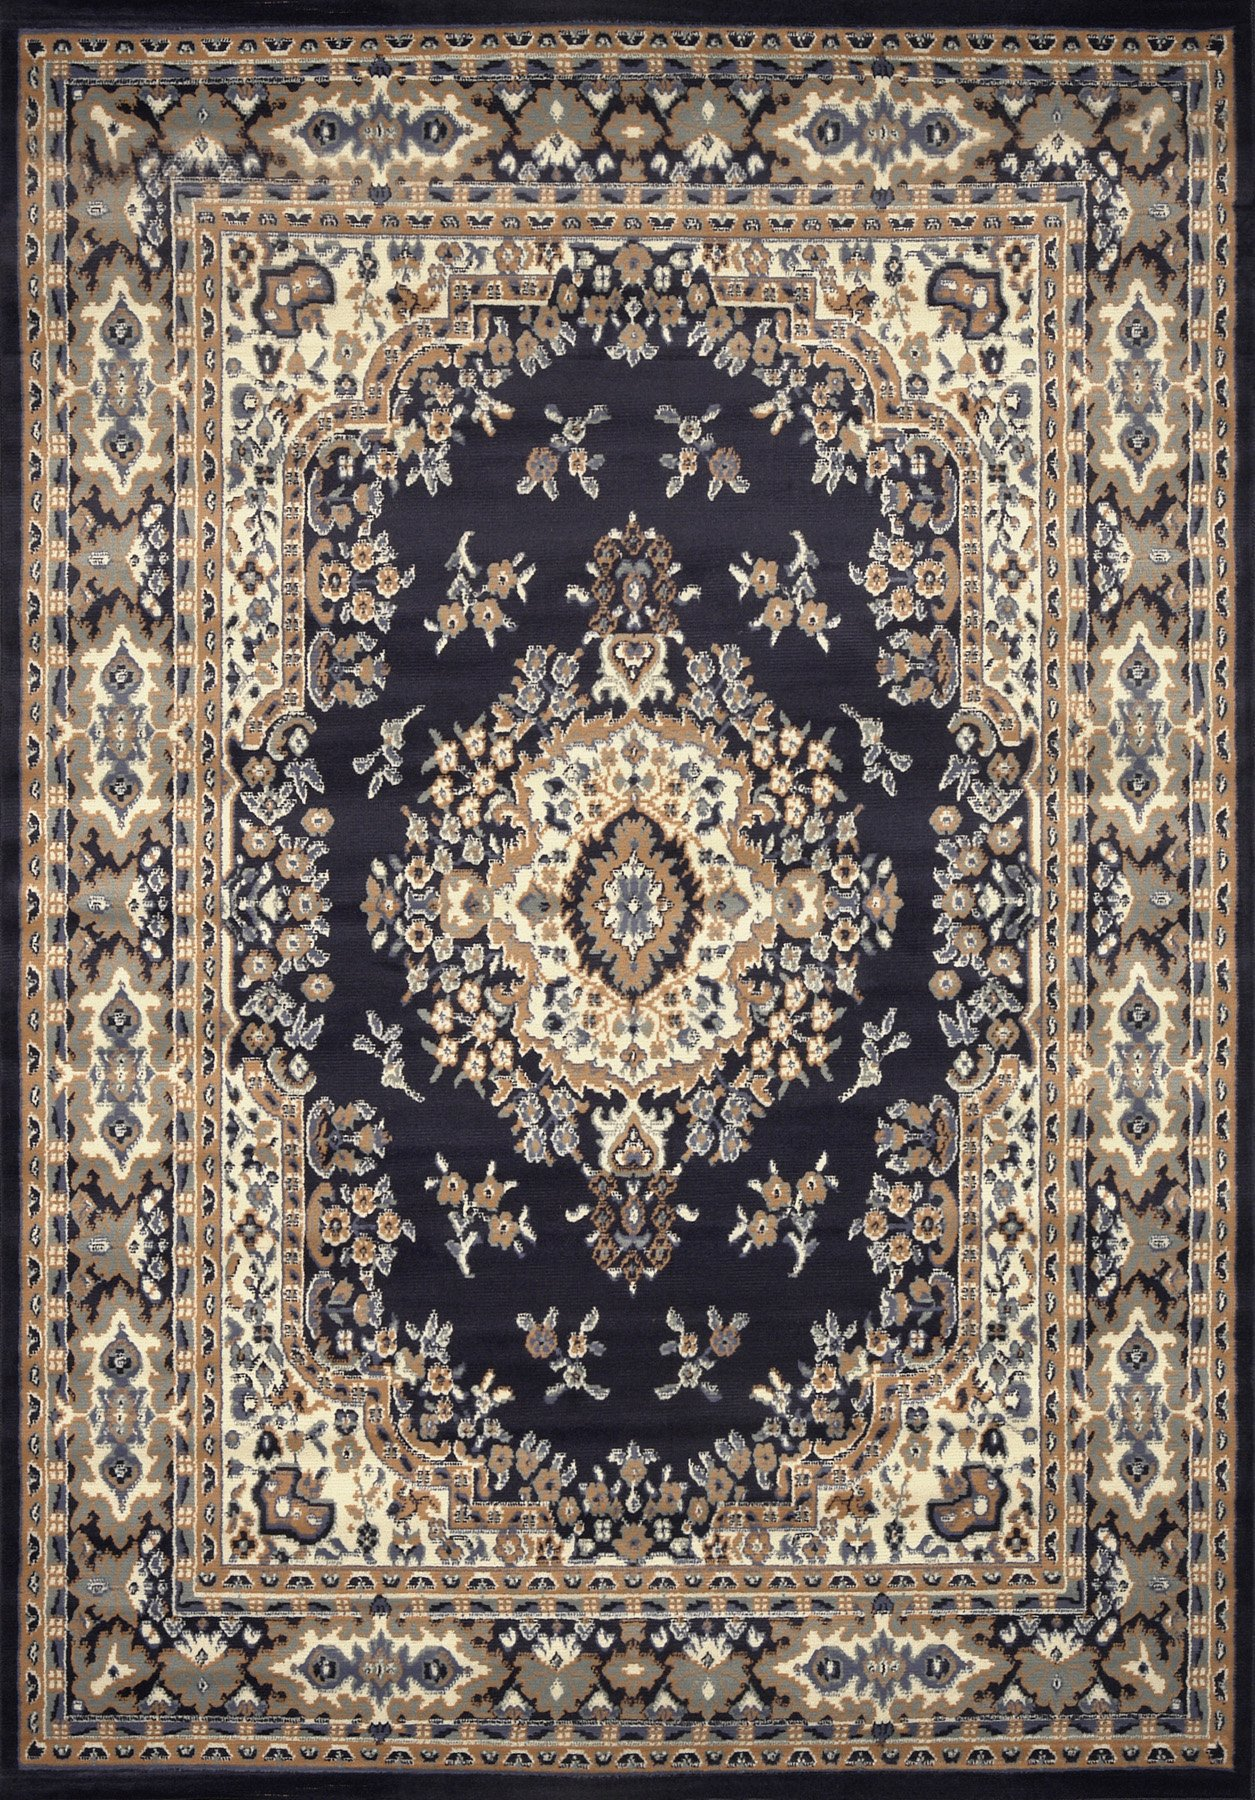 Home Dynamix 10-7069-300 Premium Collection Area Rug, 9 x 12-Feet, Navy Blue by Home Dynamix